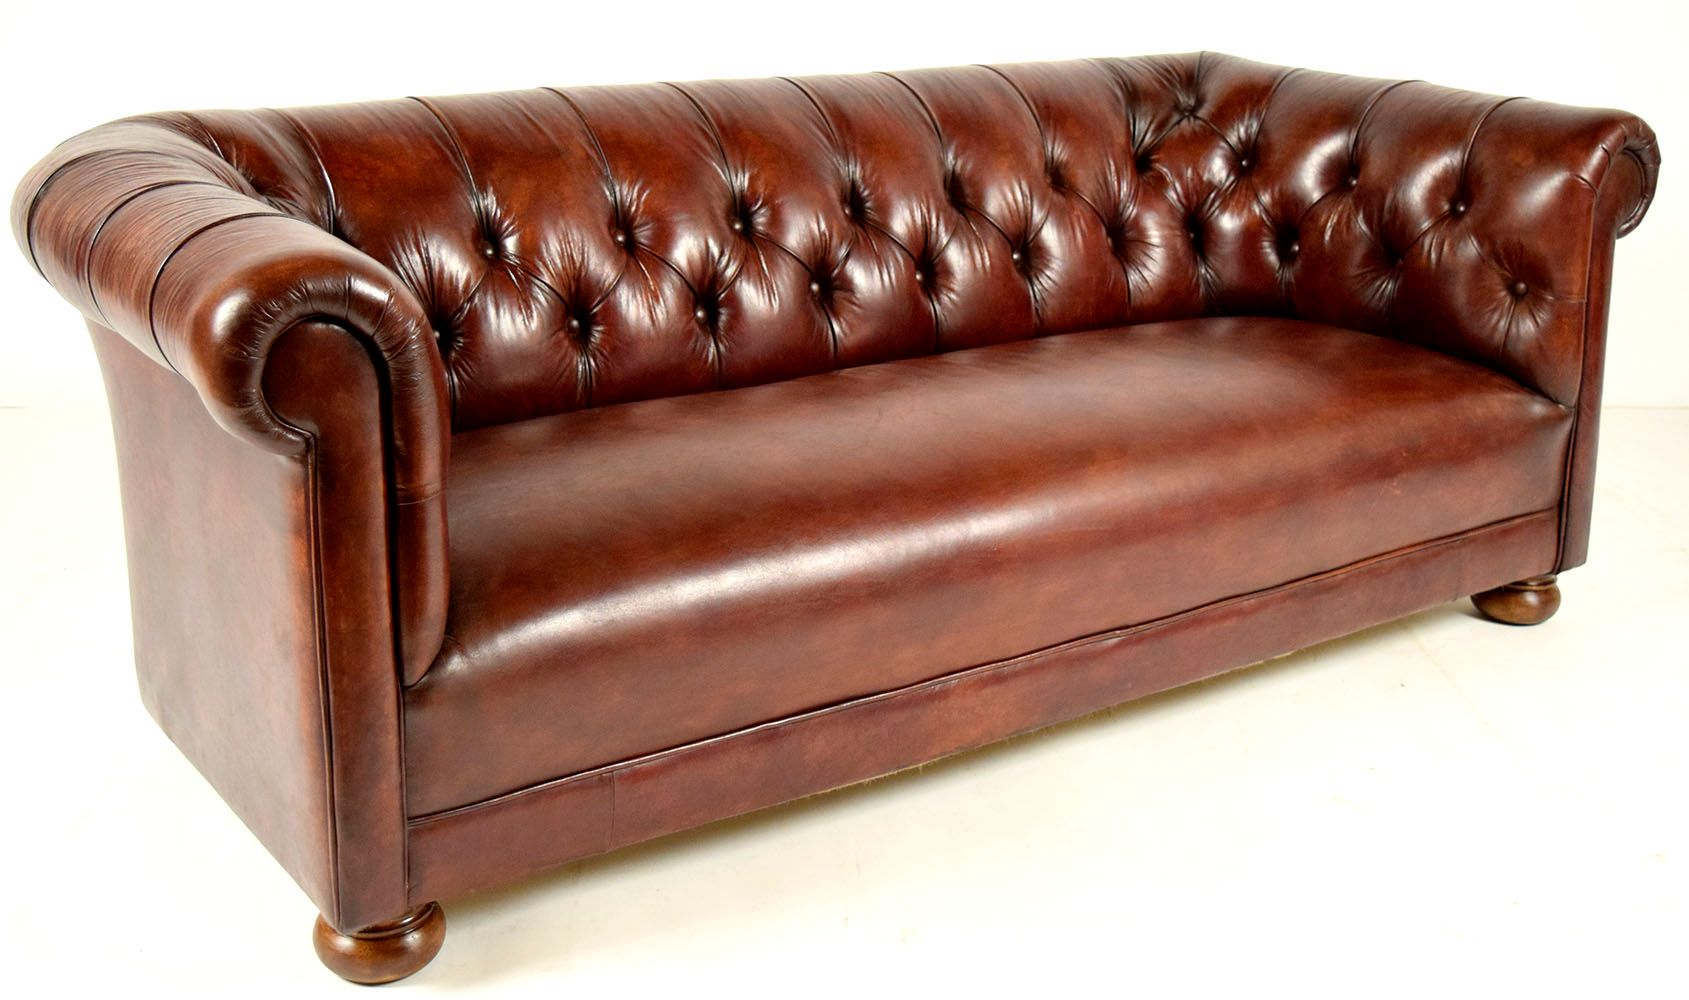 Vintage Chesterfield Brown Leather Sofa 1970s For Sale At Pamono